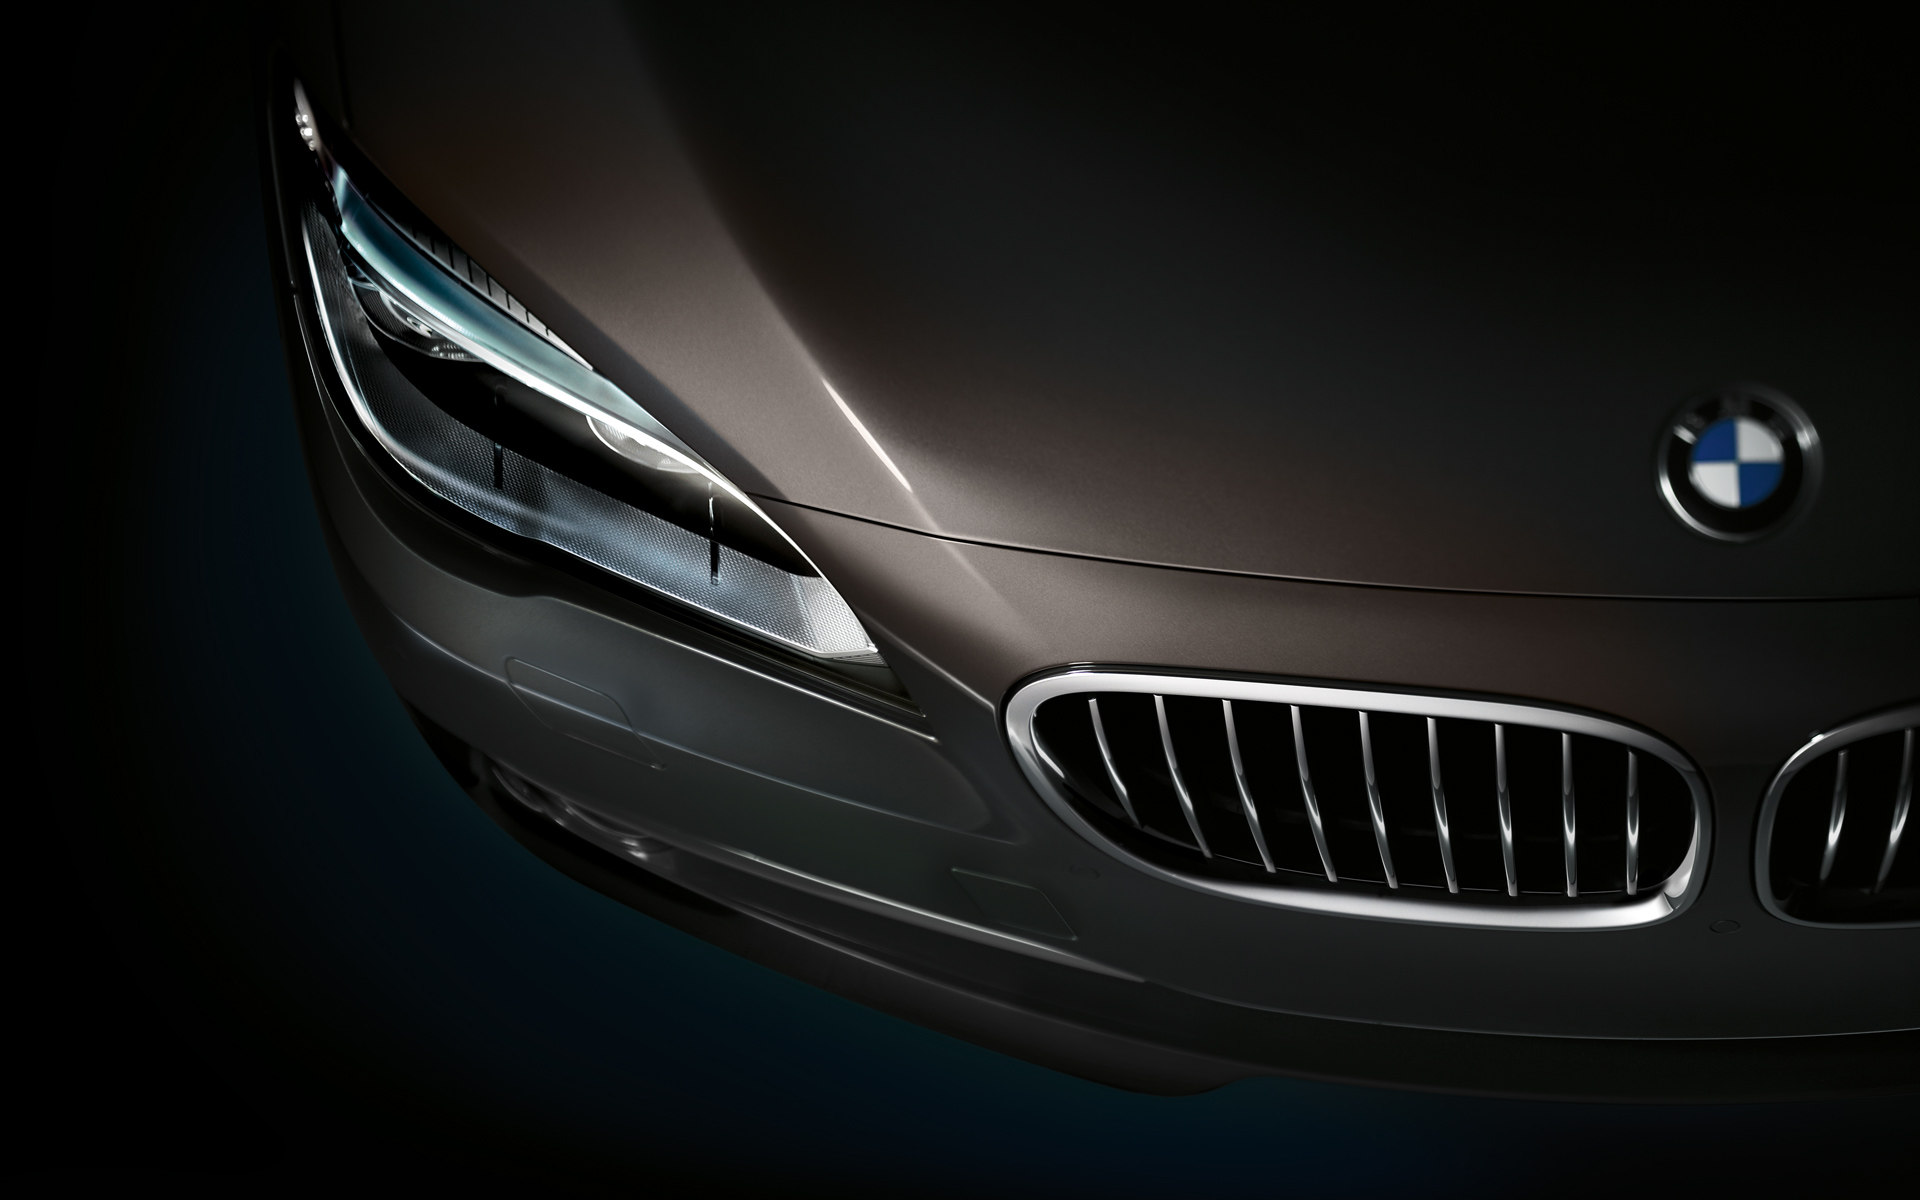 Bmw 7 Series Images And Videos